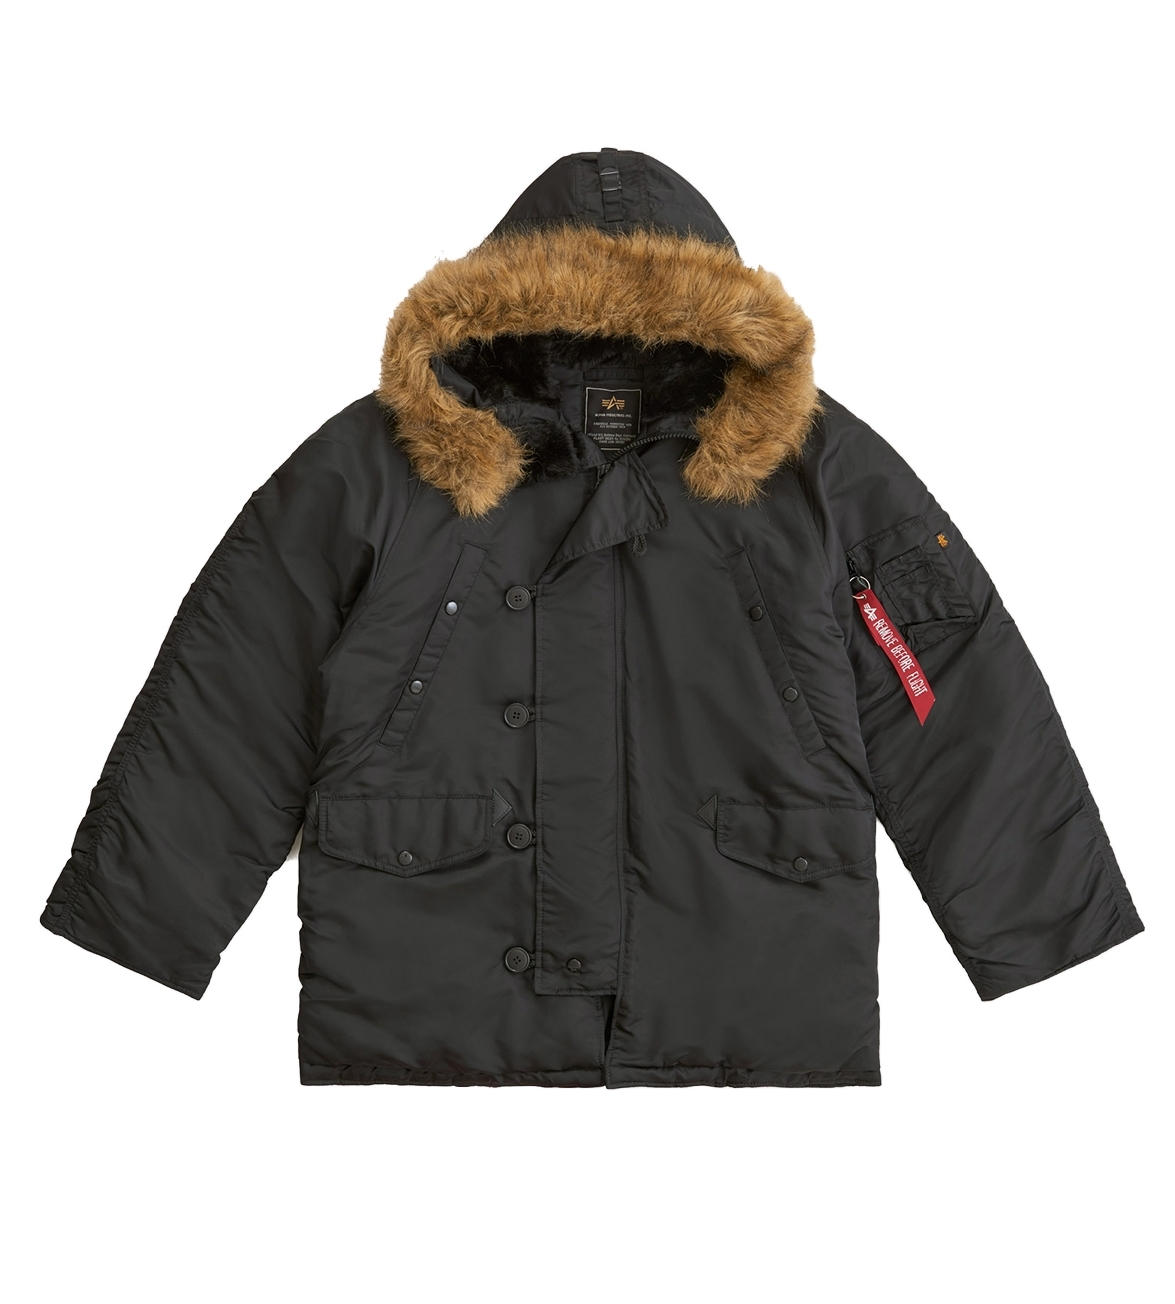 Парка Alpha Industries N-3B Regular Fit Black (черная)